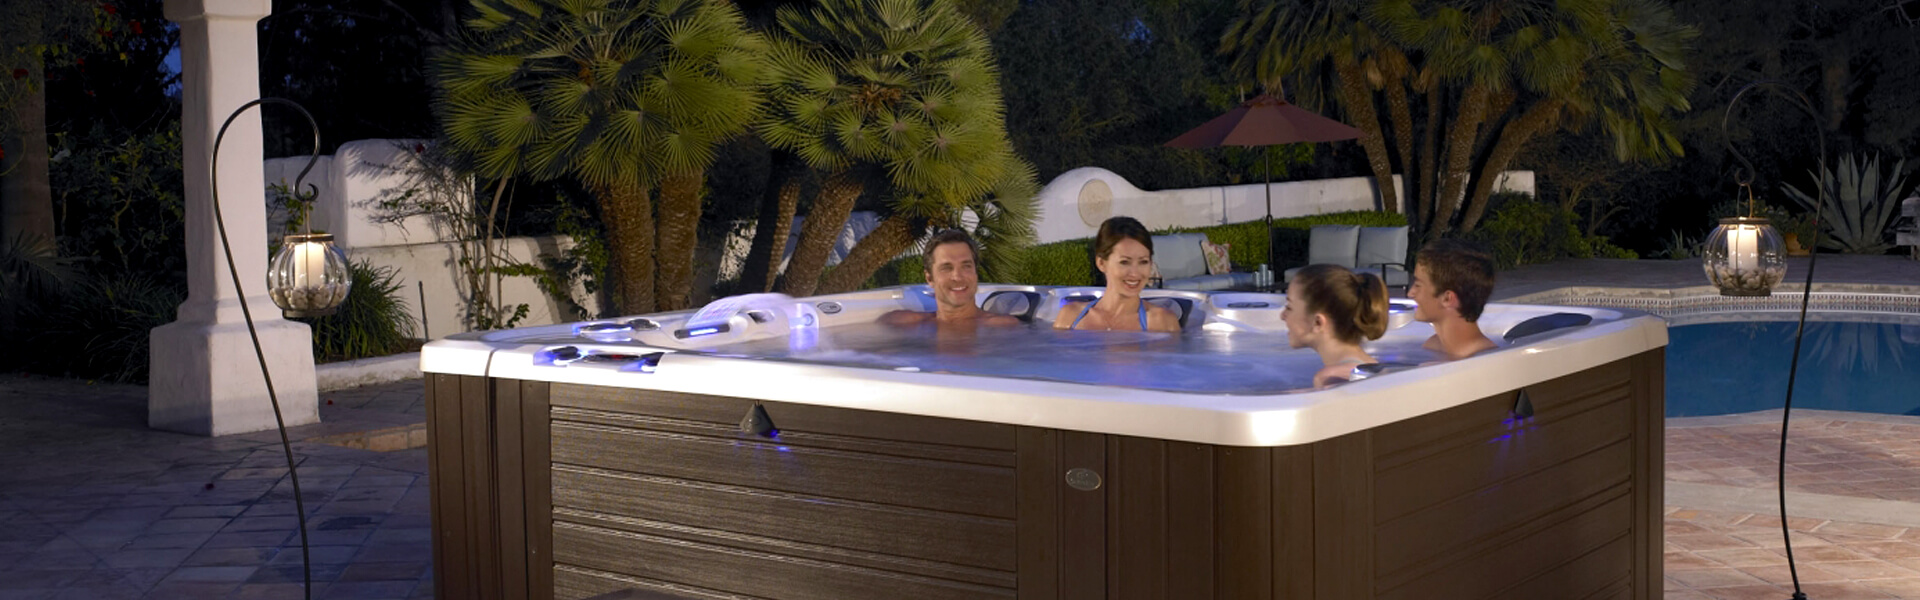 Entertainment Amp Party Ideas Spring Dance Hot Tubs